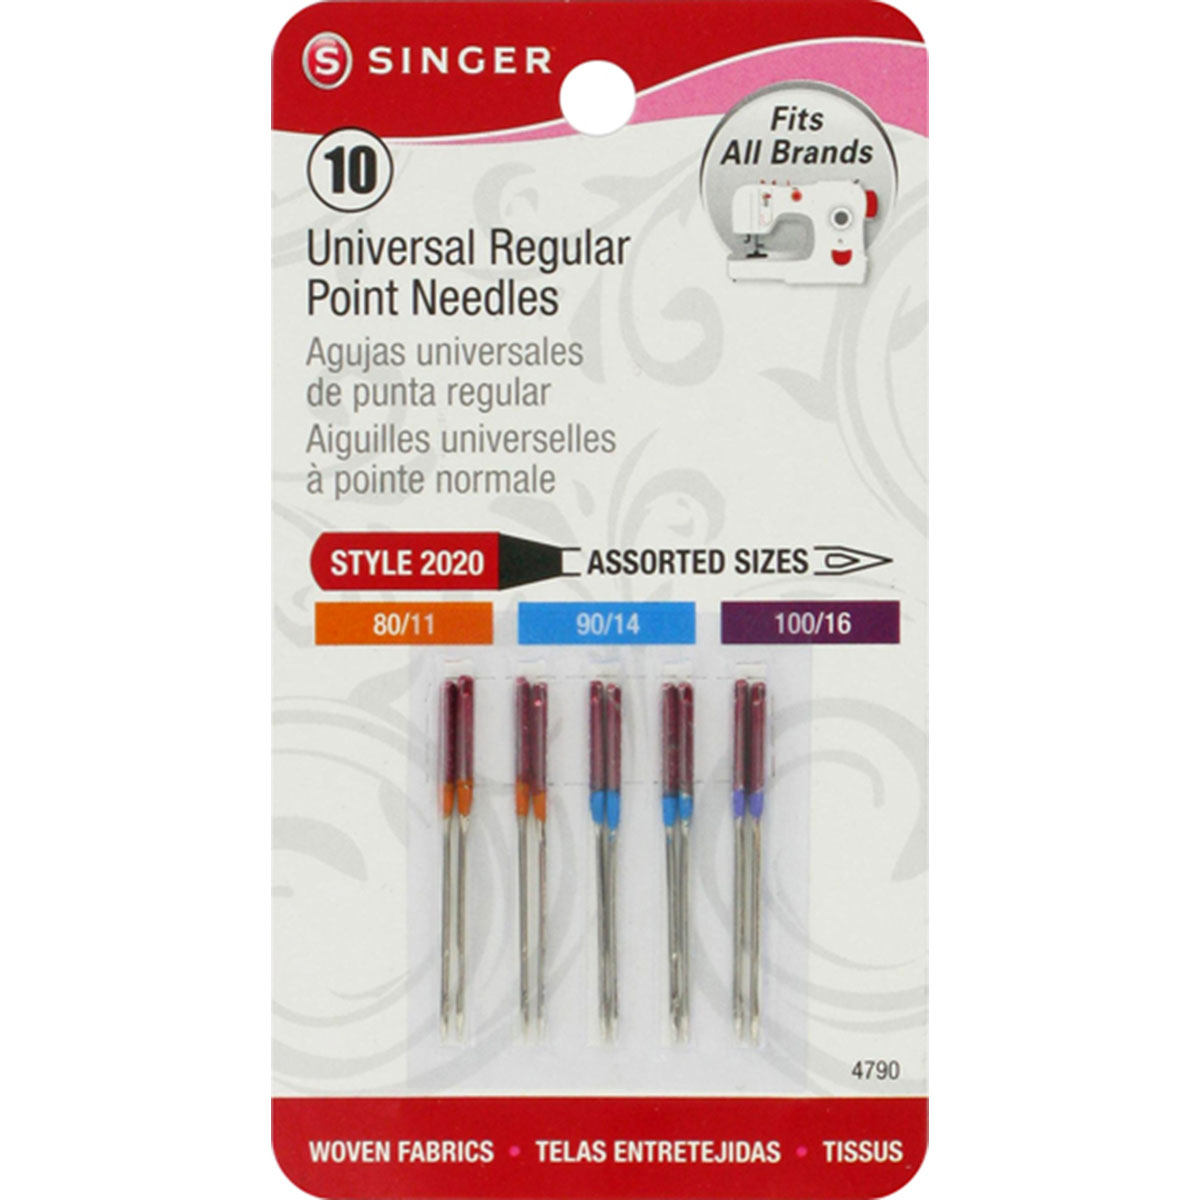 Singer Universal 10 pack Regular Point Needles Style 2020